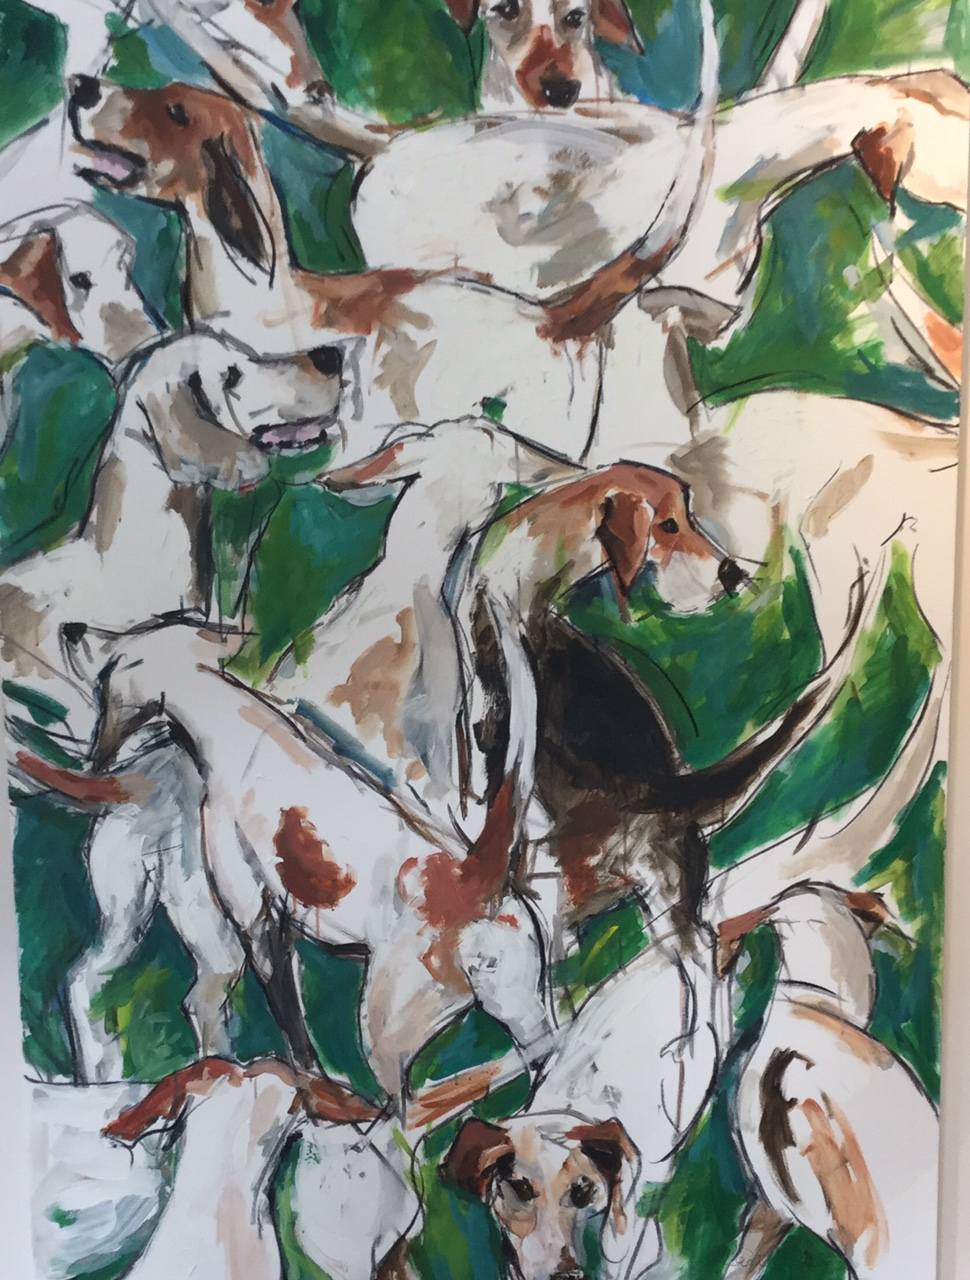 Hounds frenzy. Oil. Sold